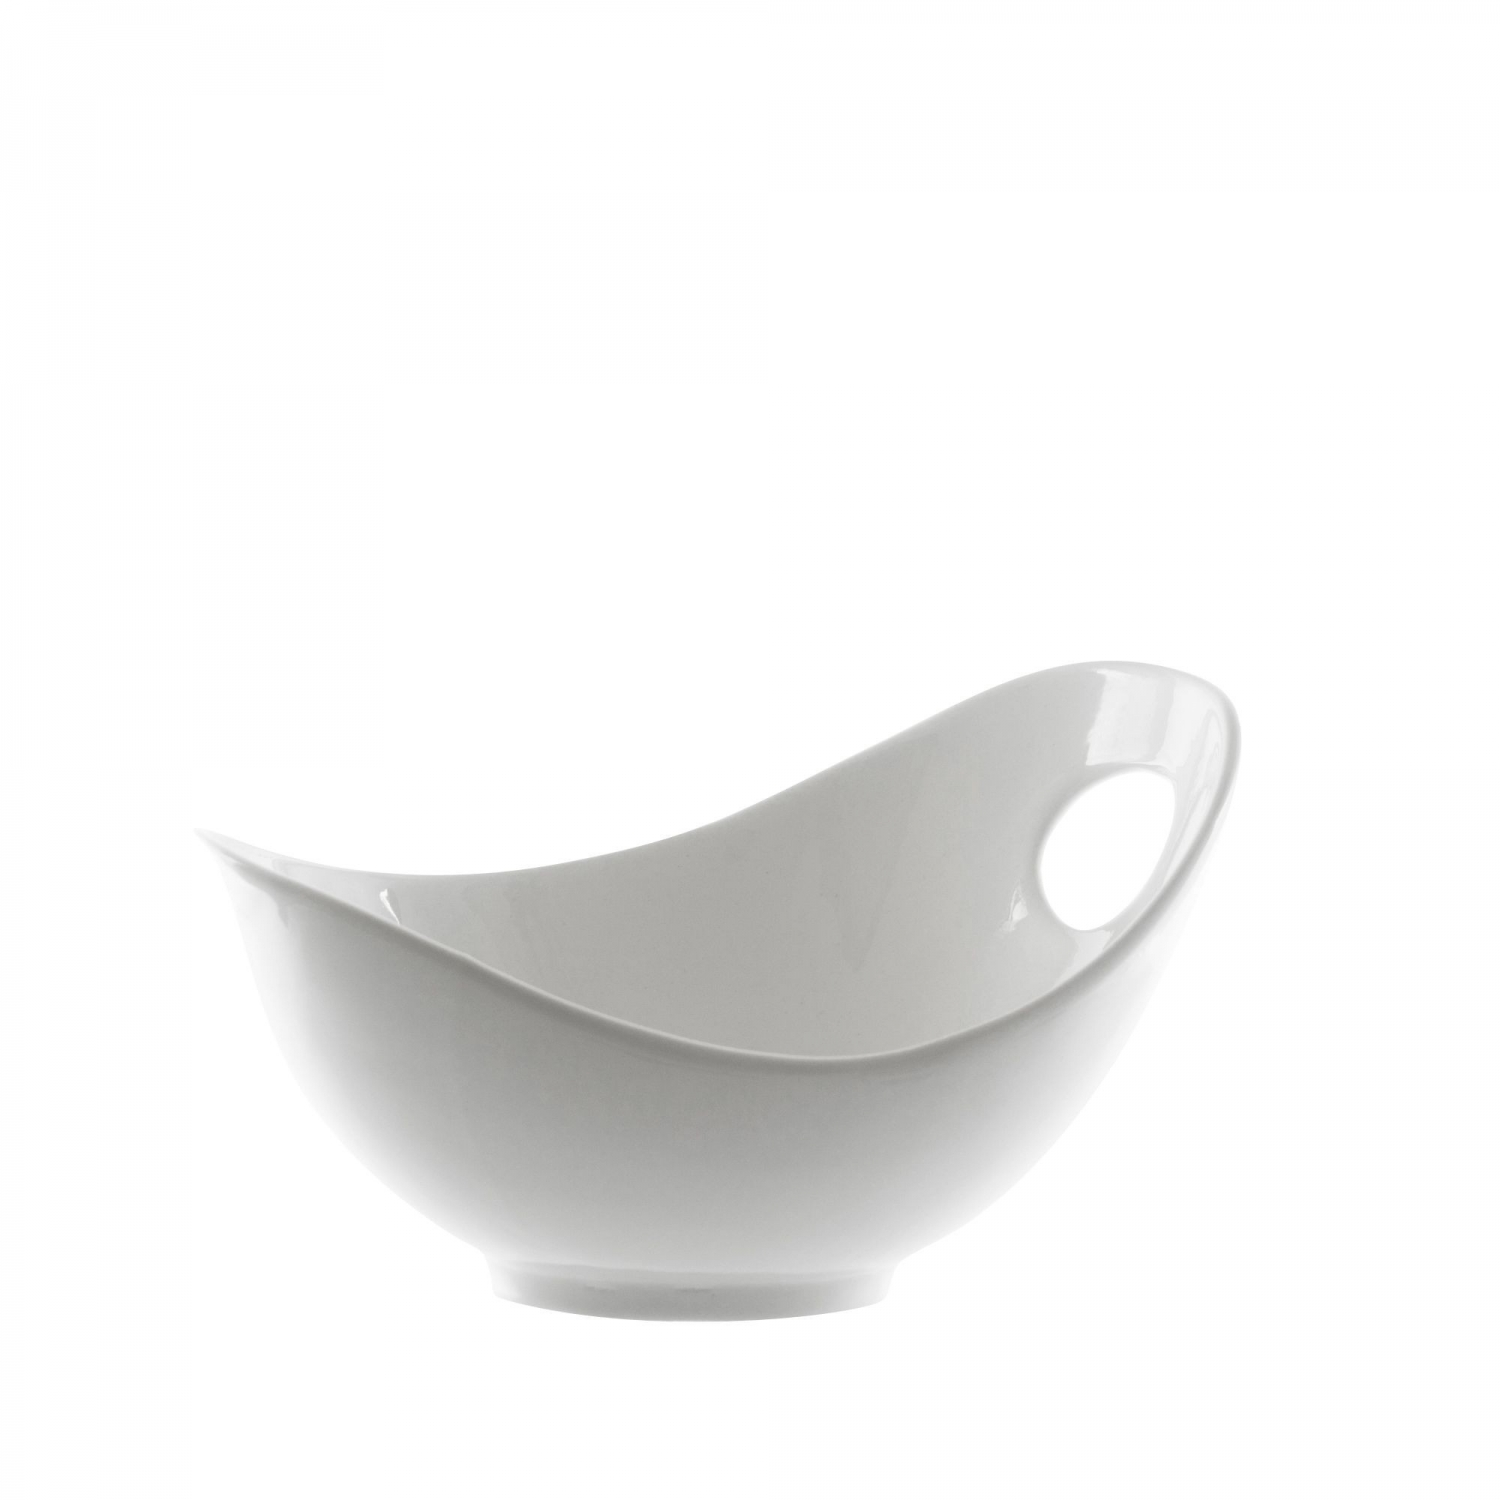 10 Strawberry Street WTR-7FBWL Whittier Fruit Bowl with Cut Out 8 oz.